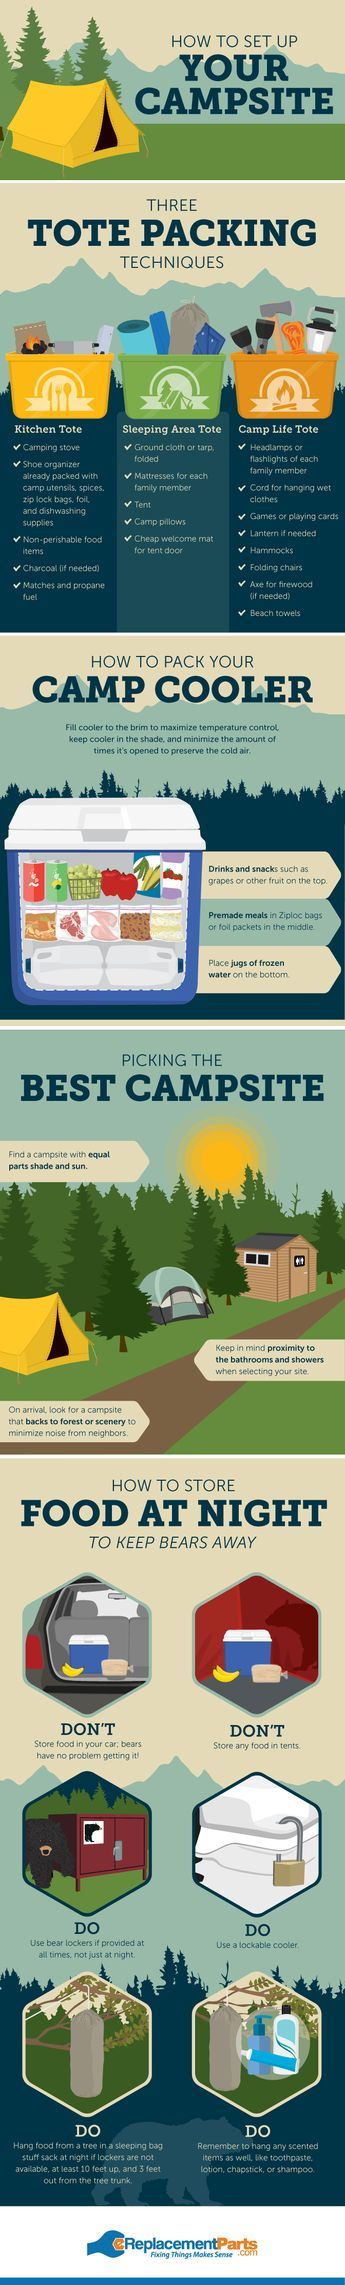 The best way to pack for a tenting journey and arrange your campsite